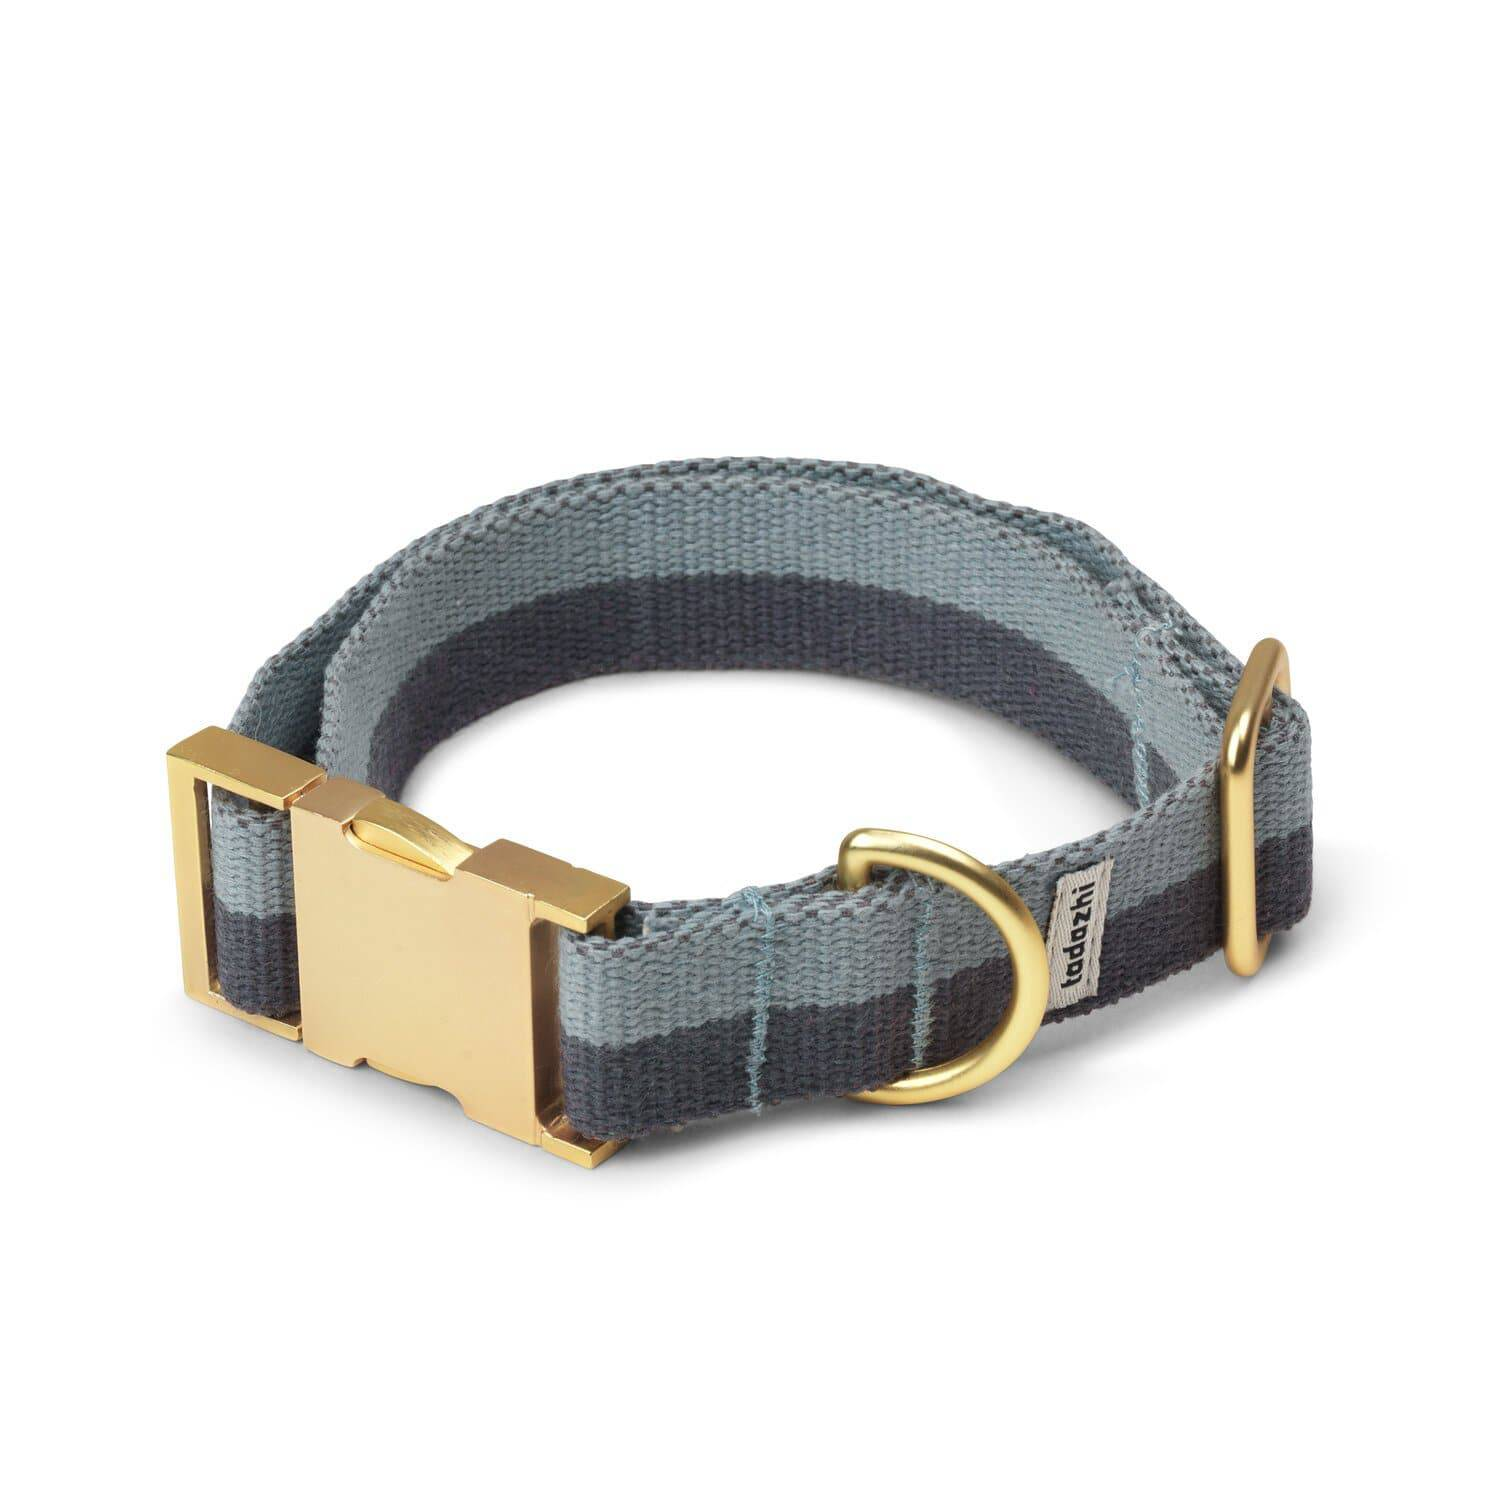 Faded Blue and Warm Grey - Cotton webbing Collar & Brass Hardware - Holler Brighton